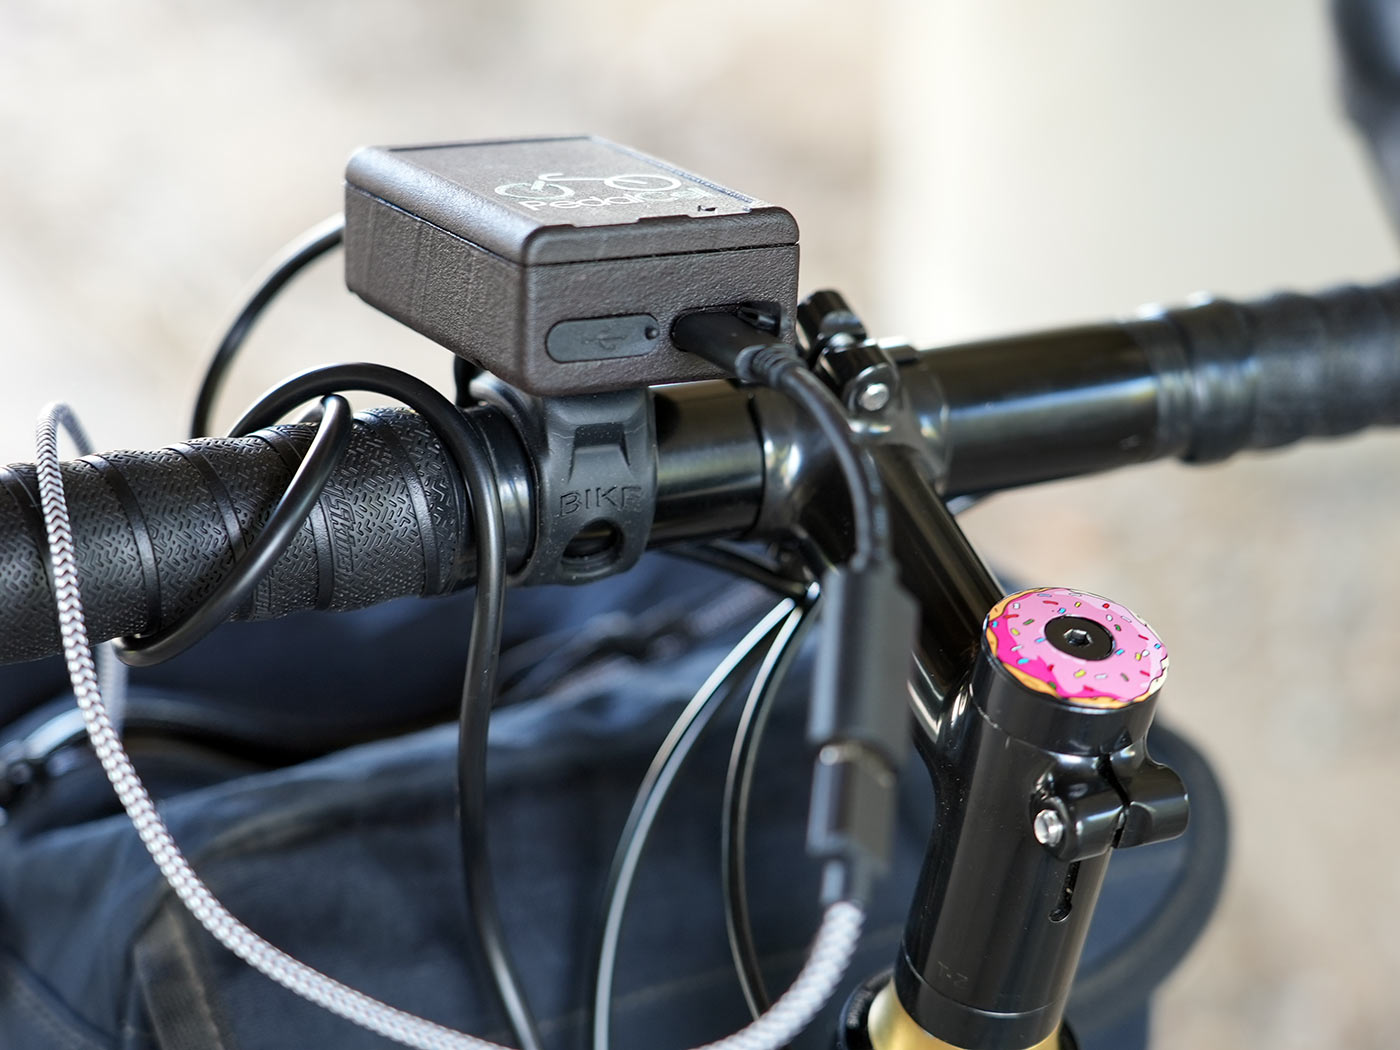 pedalcell bicycle dynamo control box with USB outlets shown on a handlebar